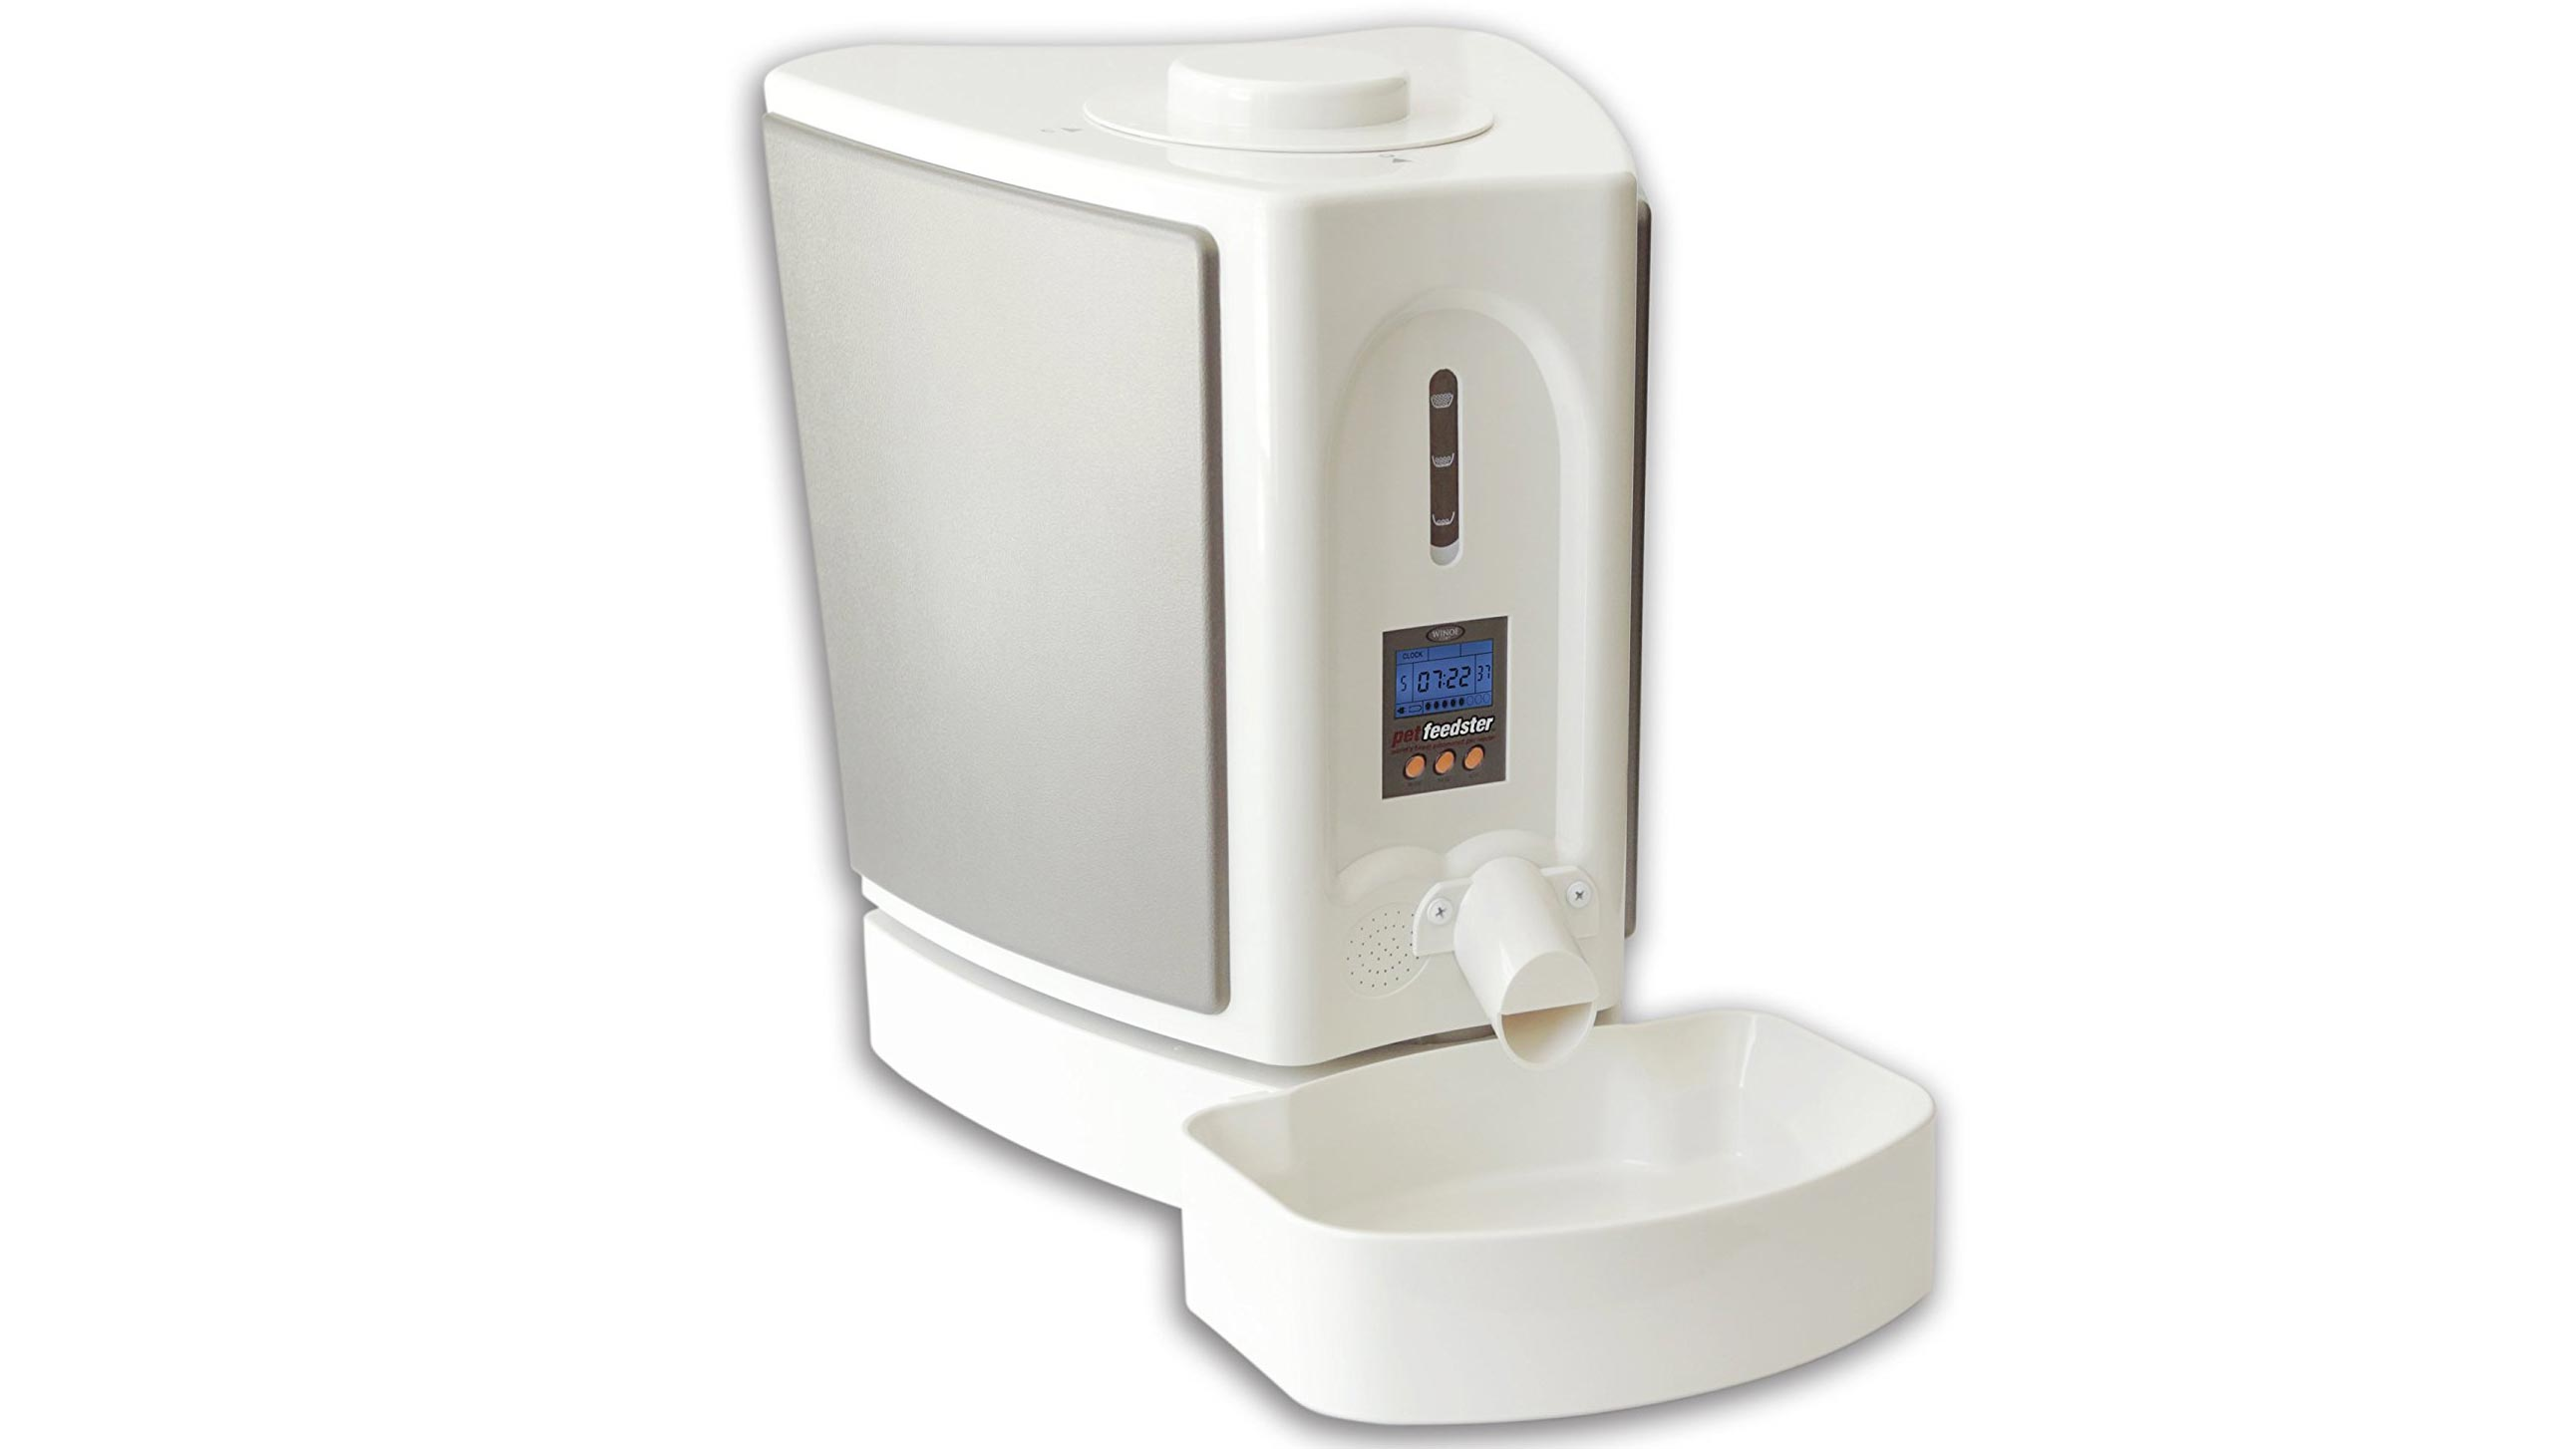 Pet Feedster USA PF-10 Automated Pet Feeder For Cats